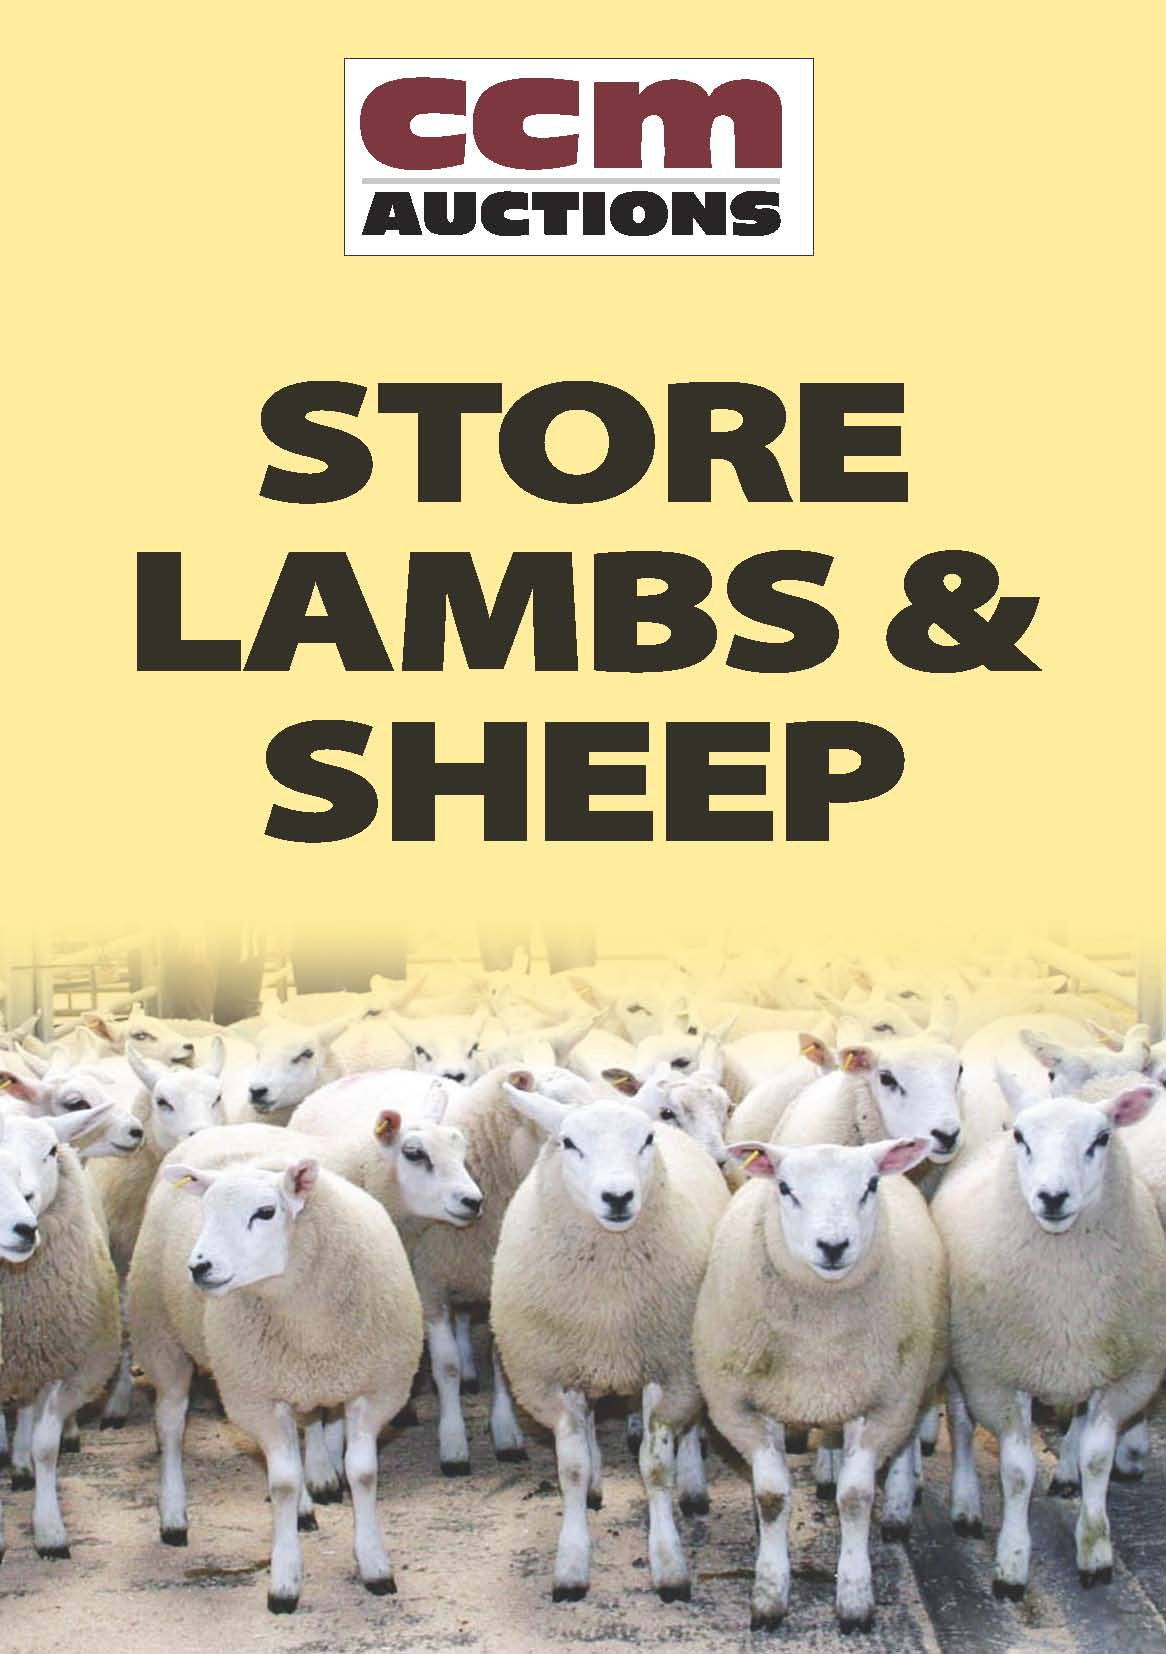 STORE LAMBS - WEDNESDAY 23RD AUGUST 2017